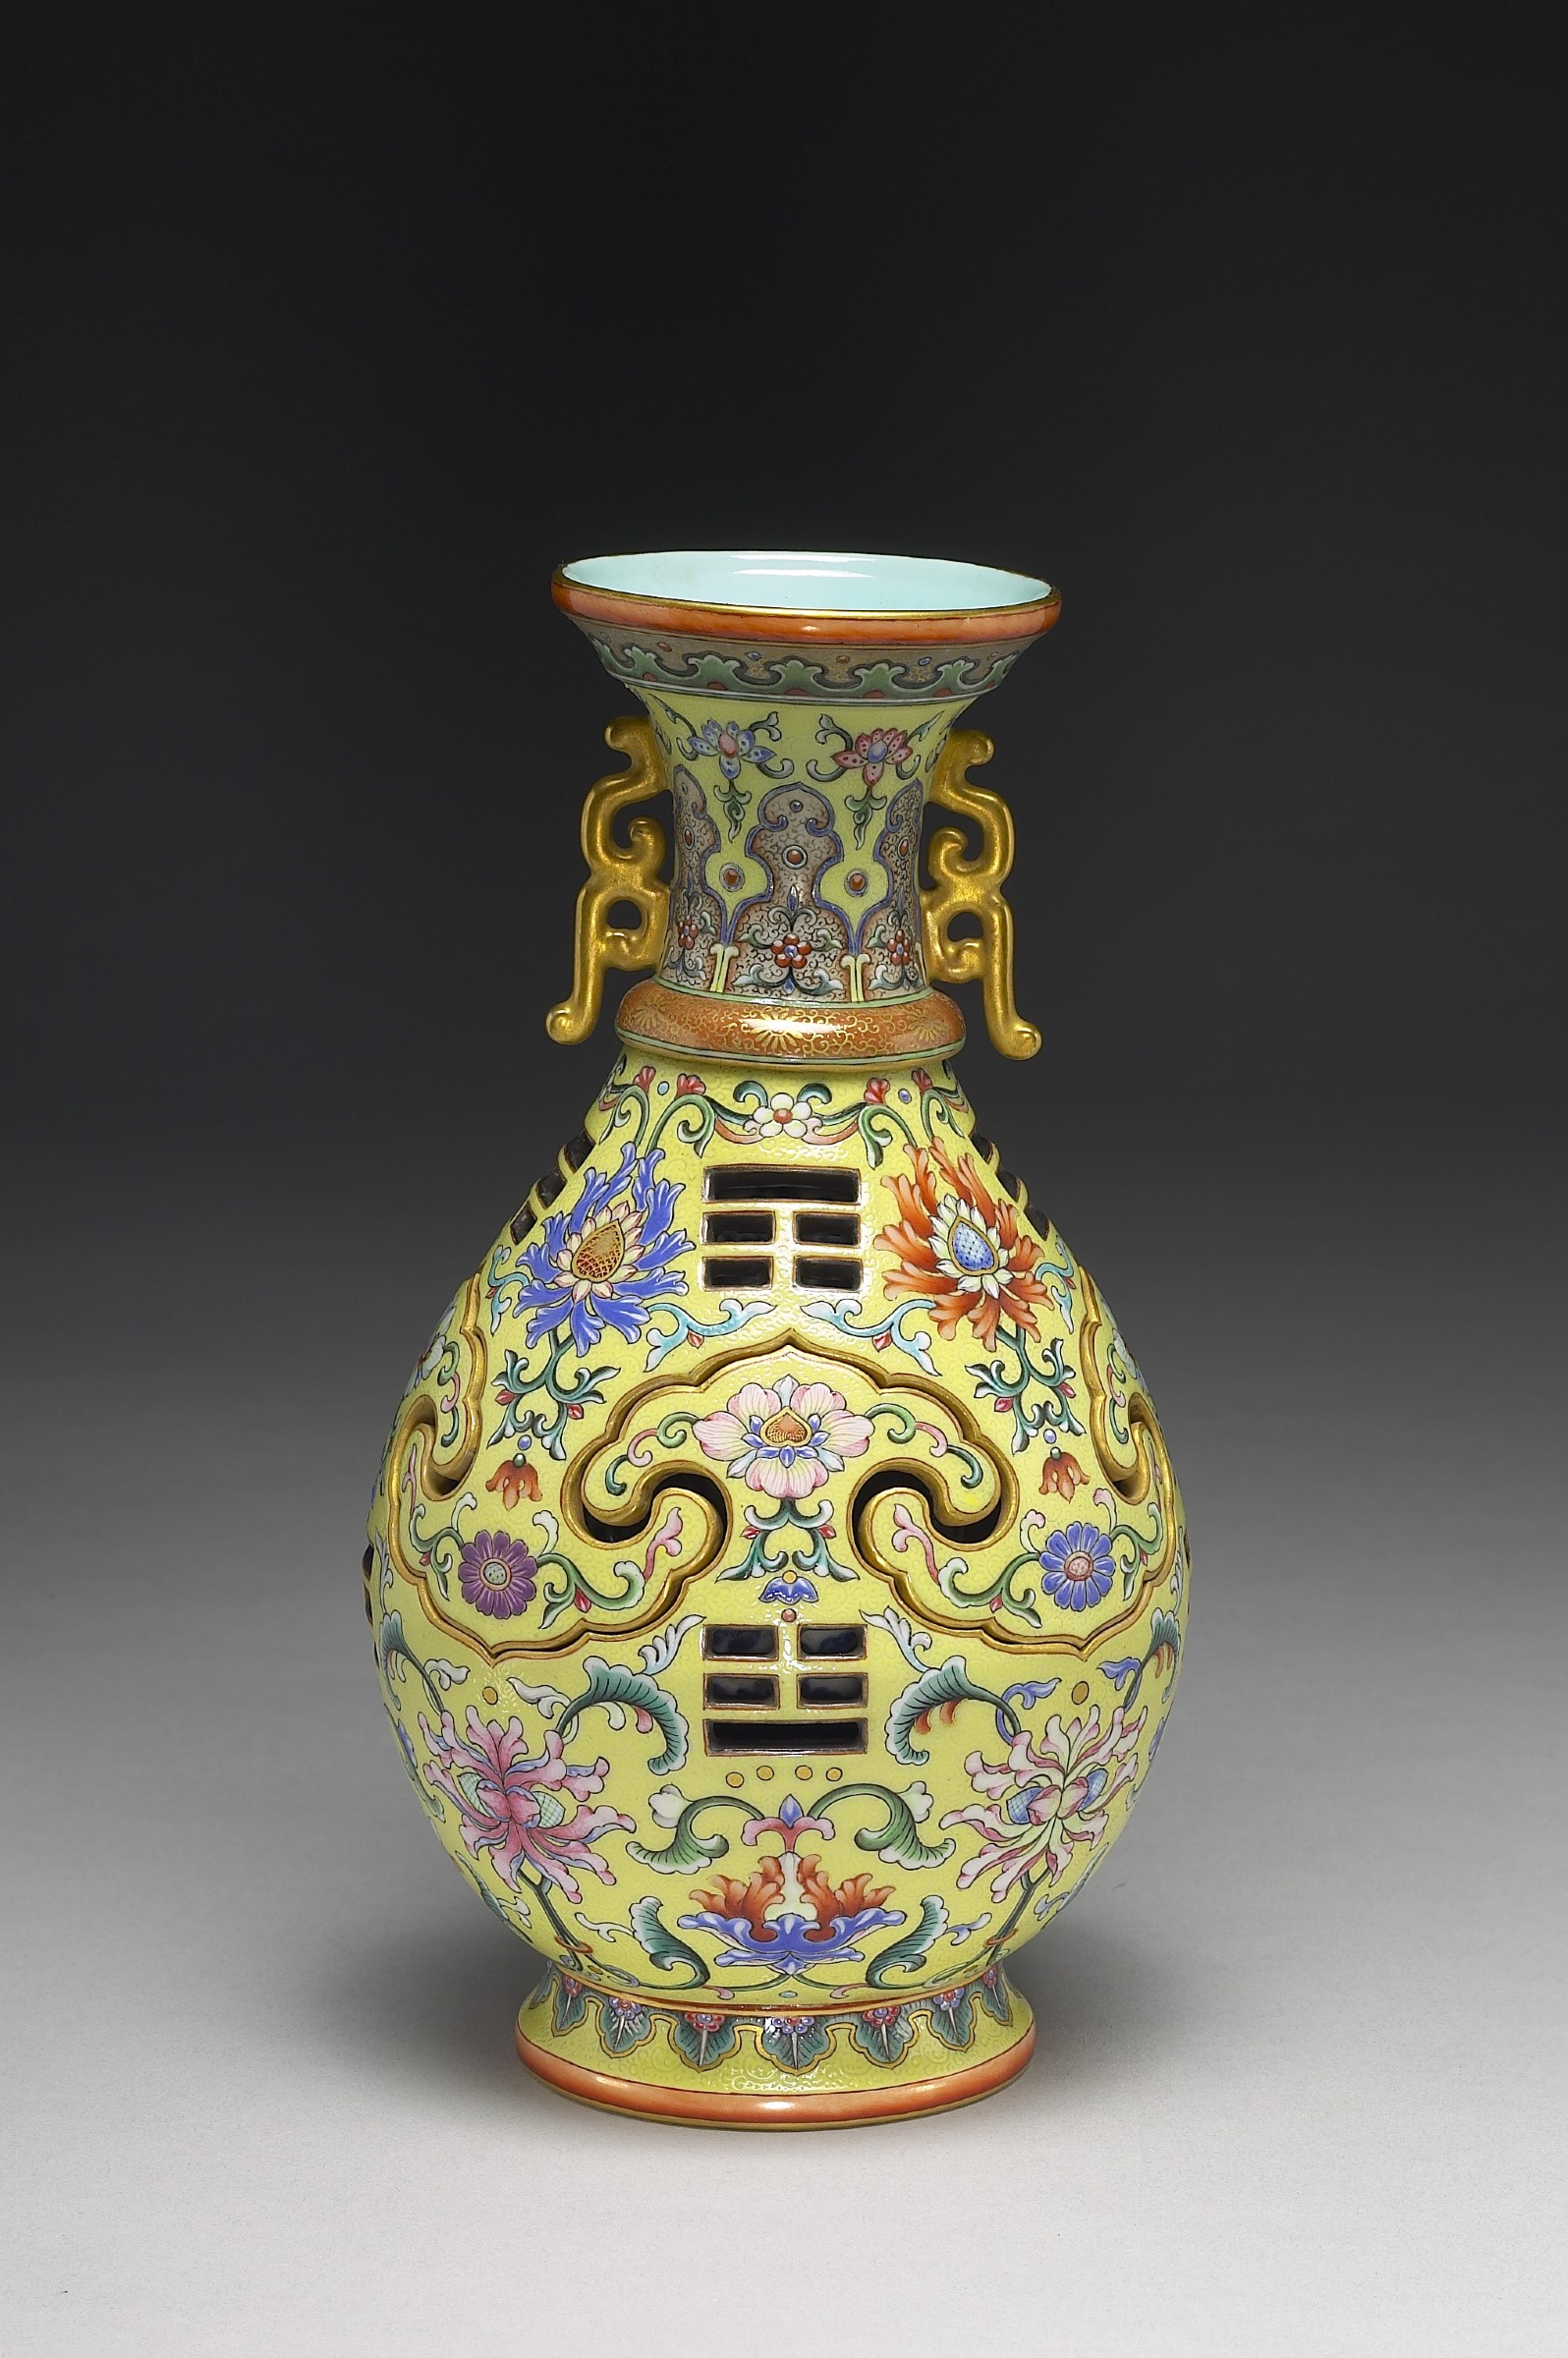 ET - Vase with a revolving core